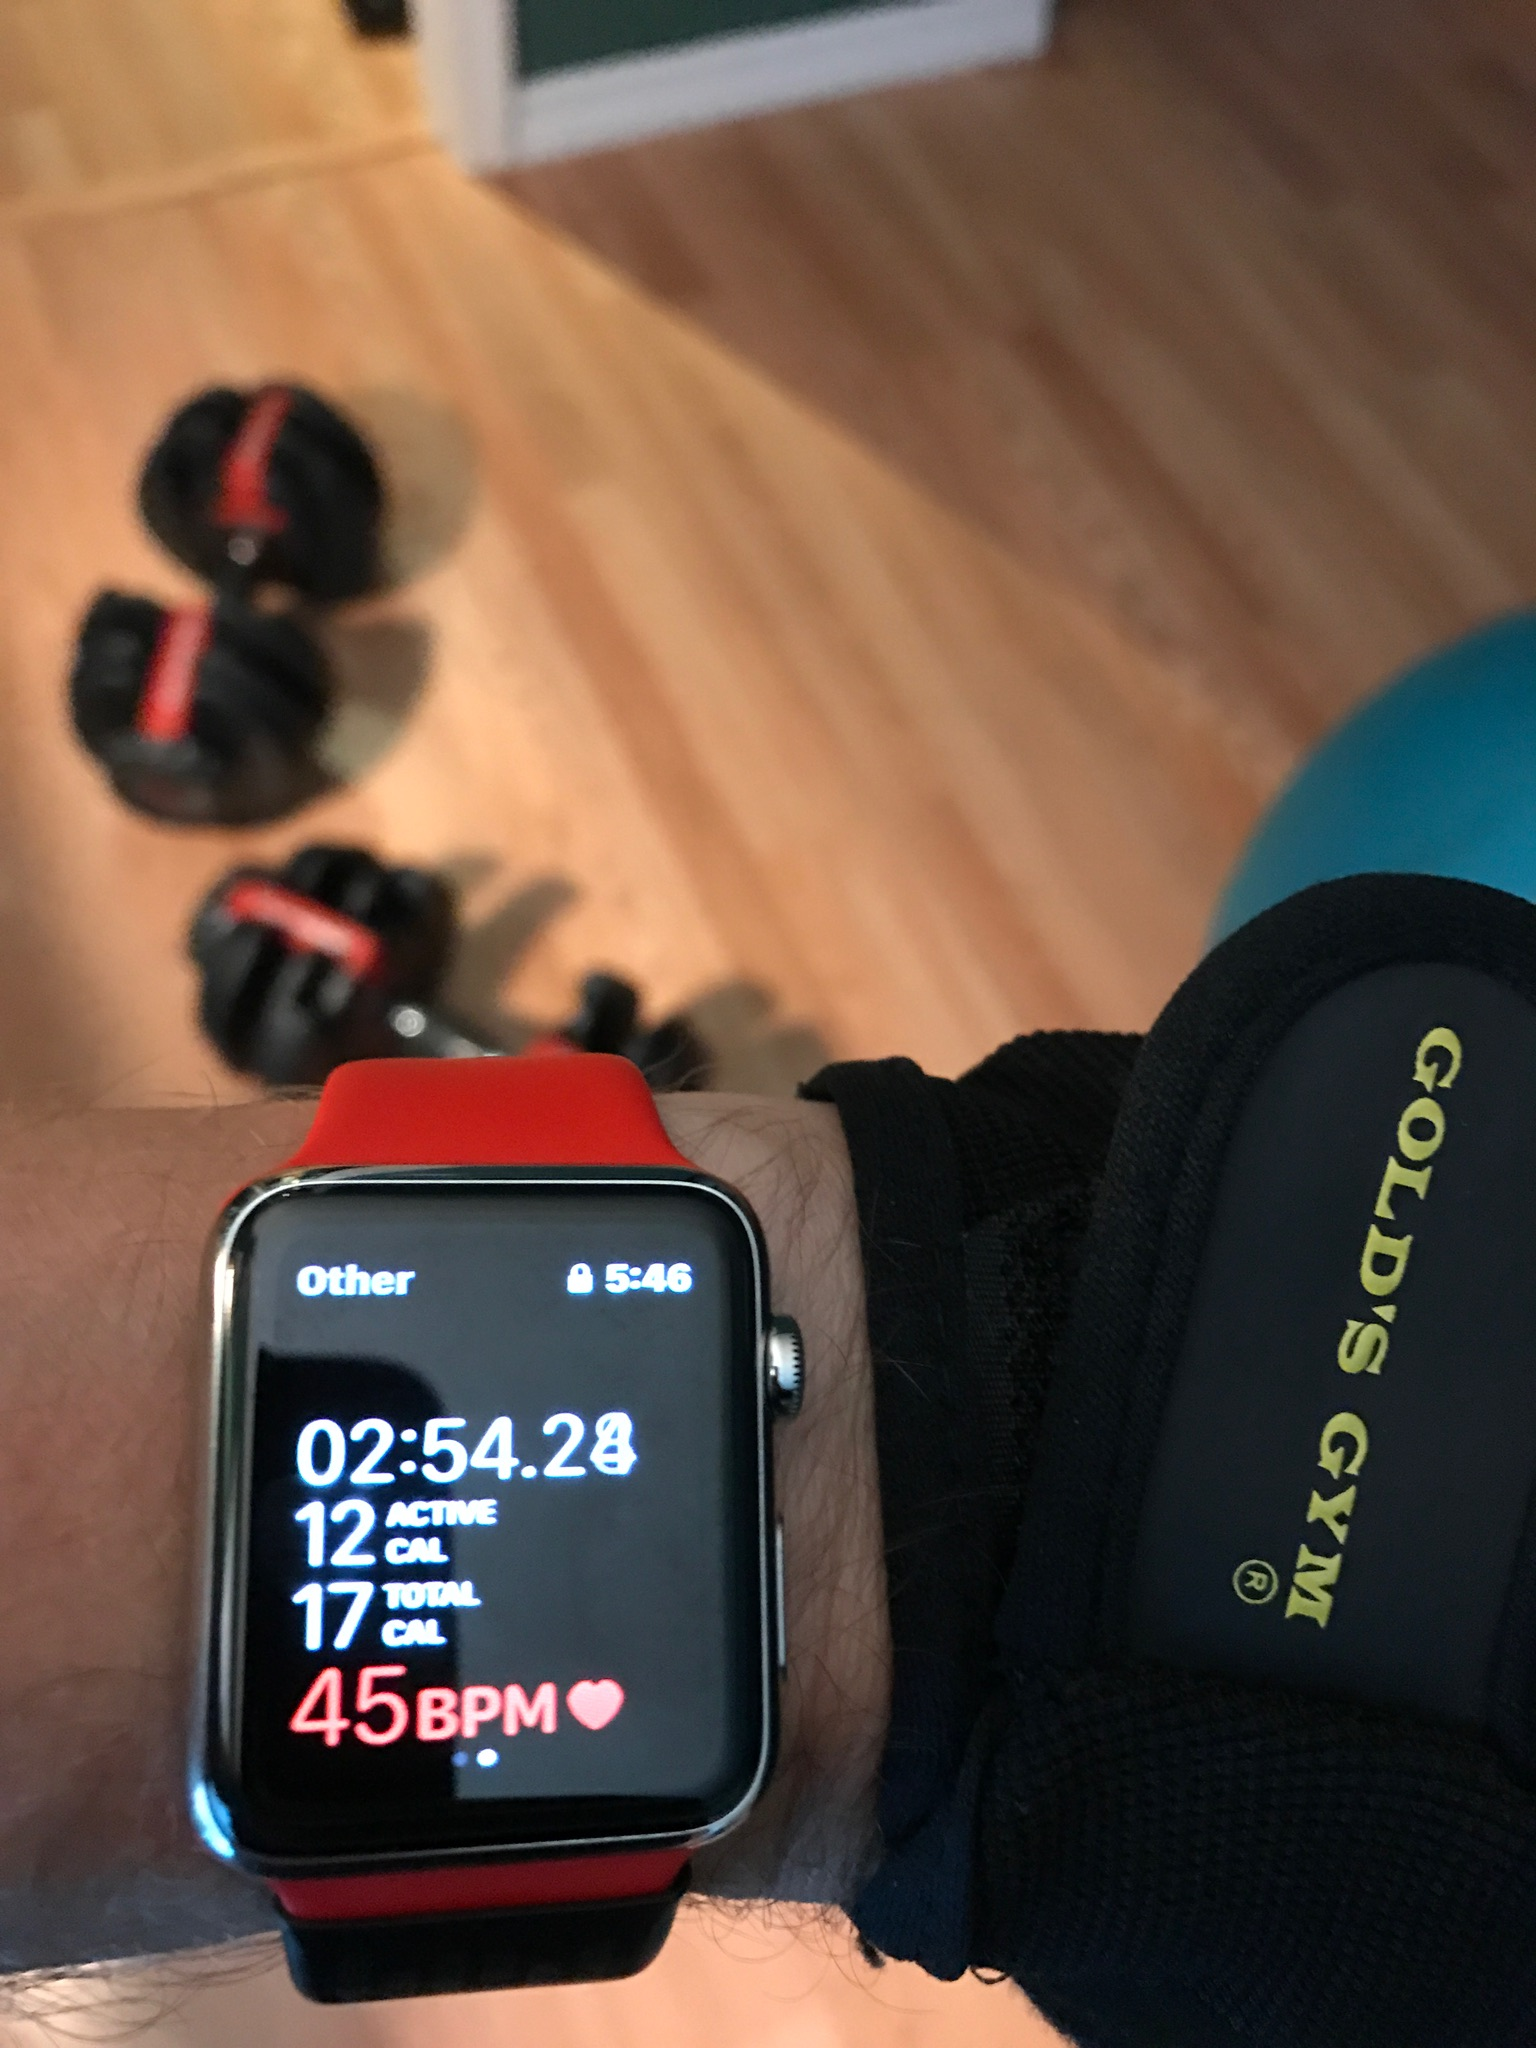 I'm lucky to get my heart rate this low while I am sleeping, much less lifting weights!